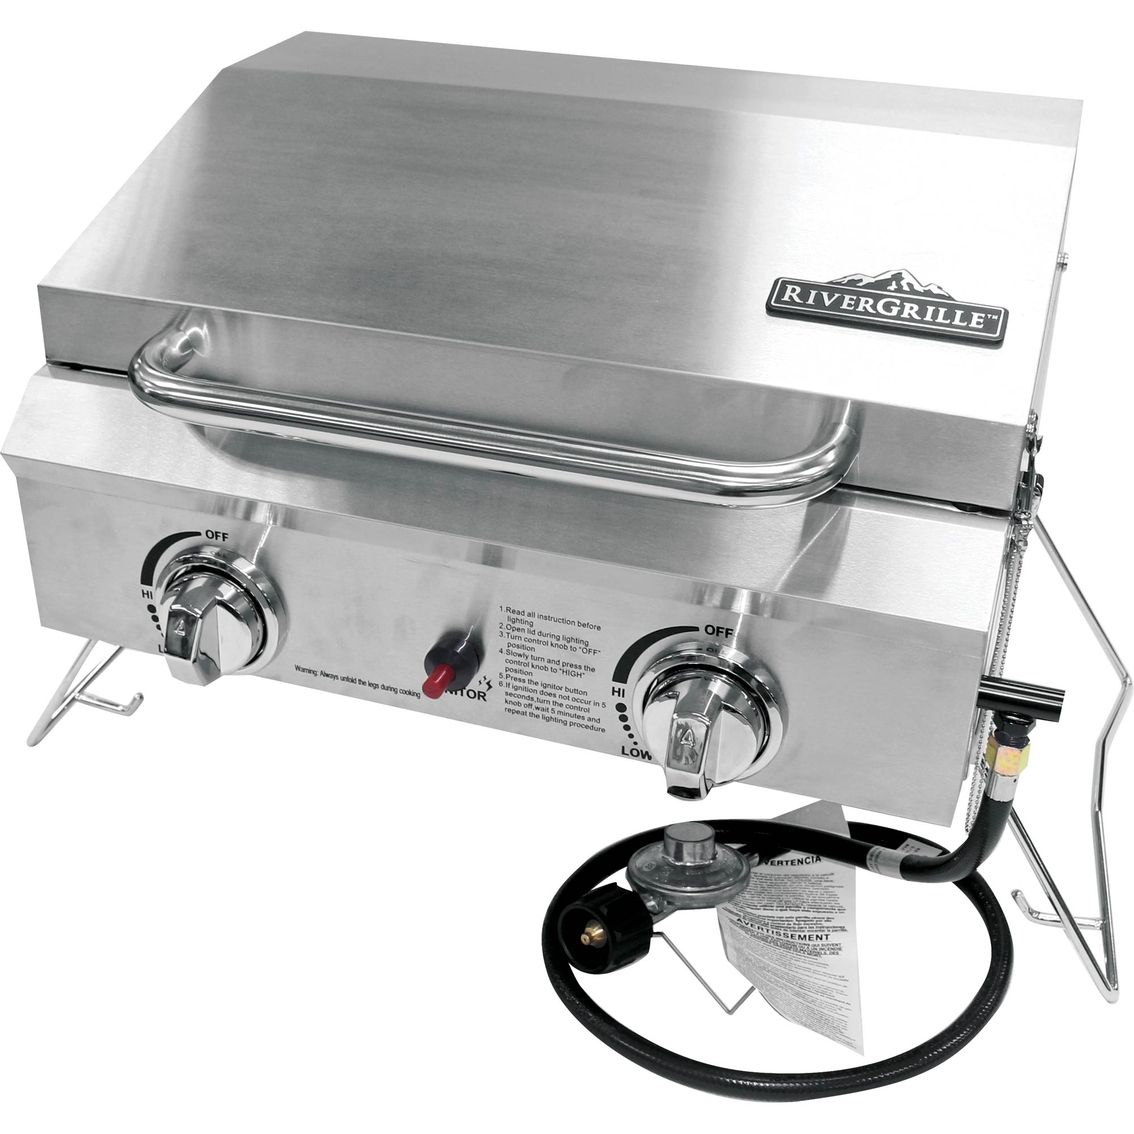 The Rivergrille Portable 2 Burner Stainless Steel Gas Grill Is Great For Picnics Camping Tailgating And More